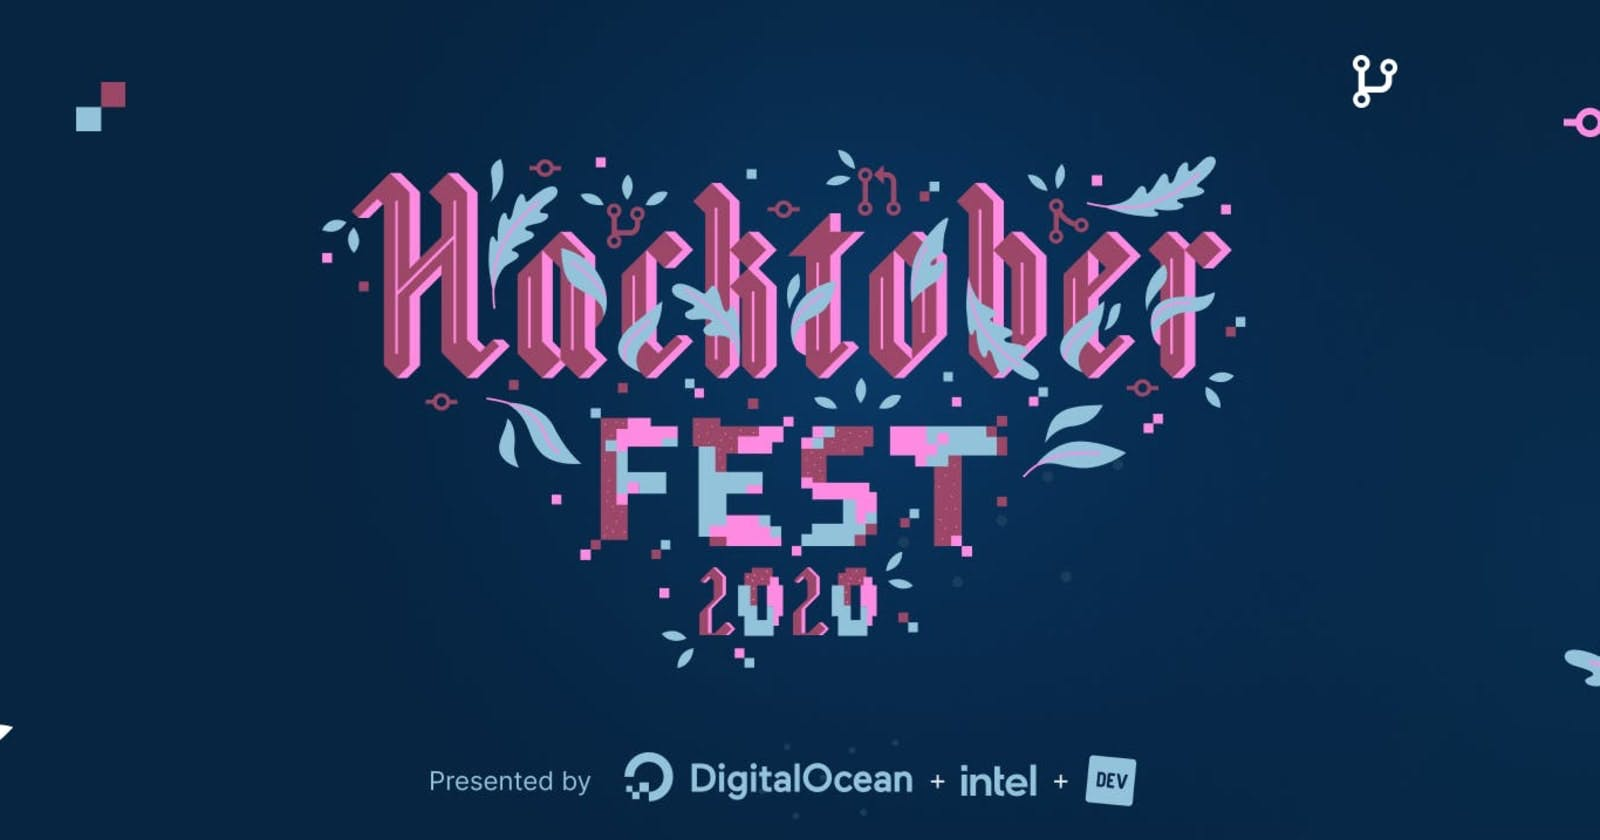 Contributing to Open-Source: My HacktoberFest Experience